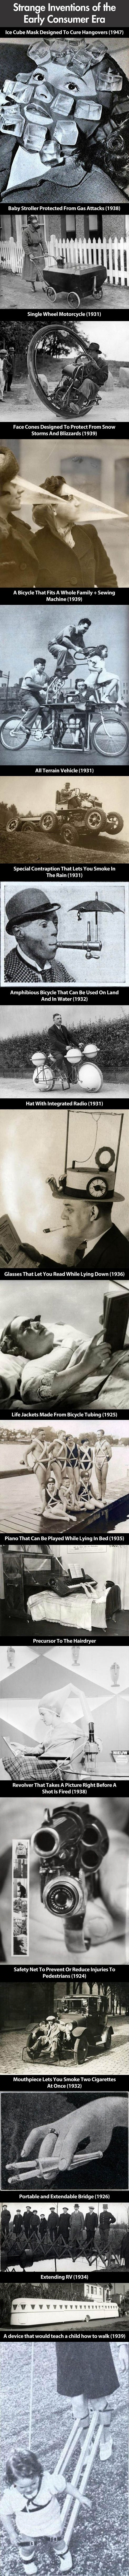 Best Stupid Inventions Ideas On Pinterest Dumb Inventions - 20 strange awesome inventions need life